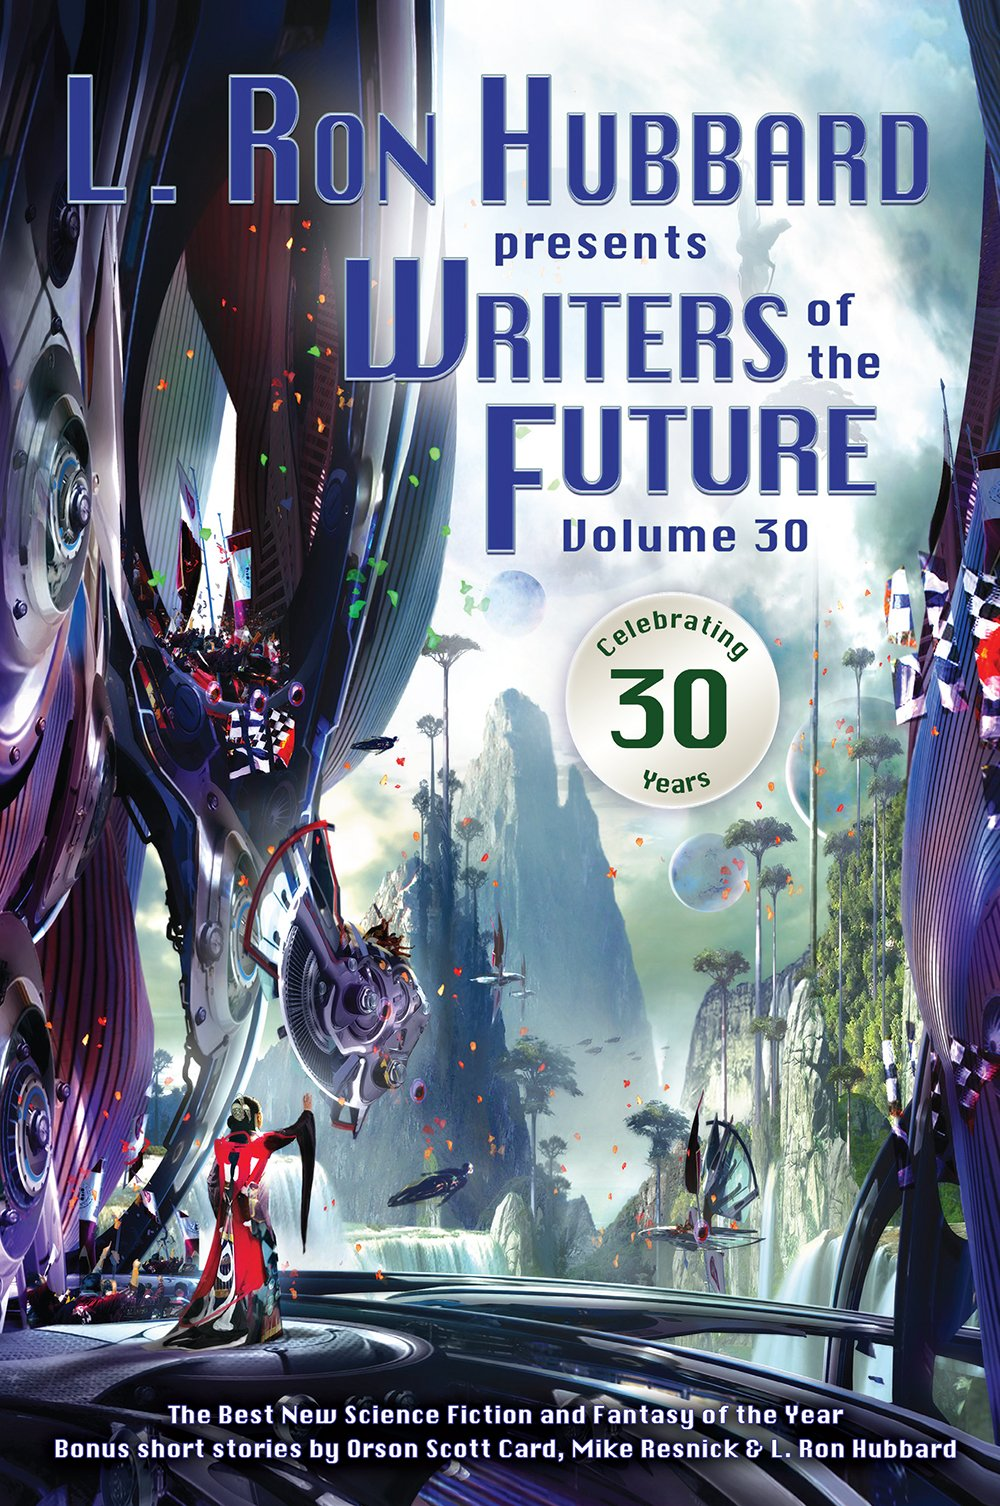 writers of the future volume the best new science fiction and writers of the future volume 30 the best new science fiction and fantasy of the year l ron hubbard presents writers of the future l ron hubbard